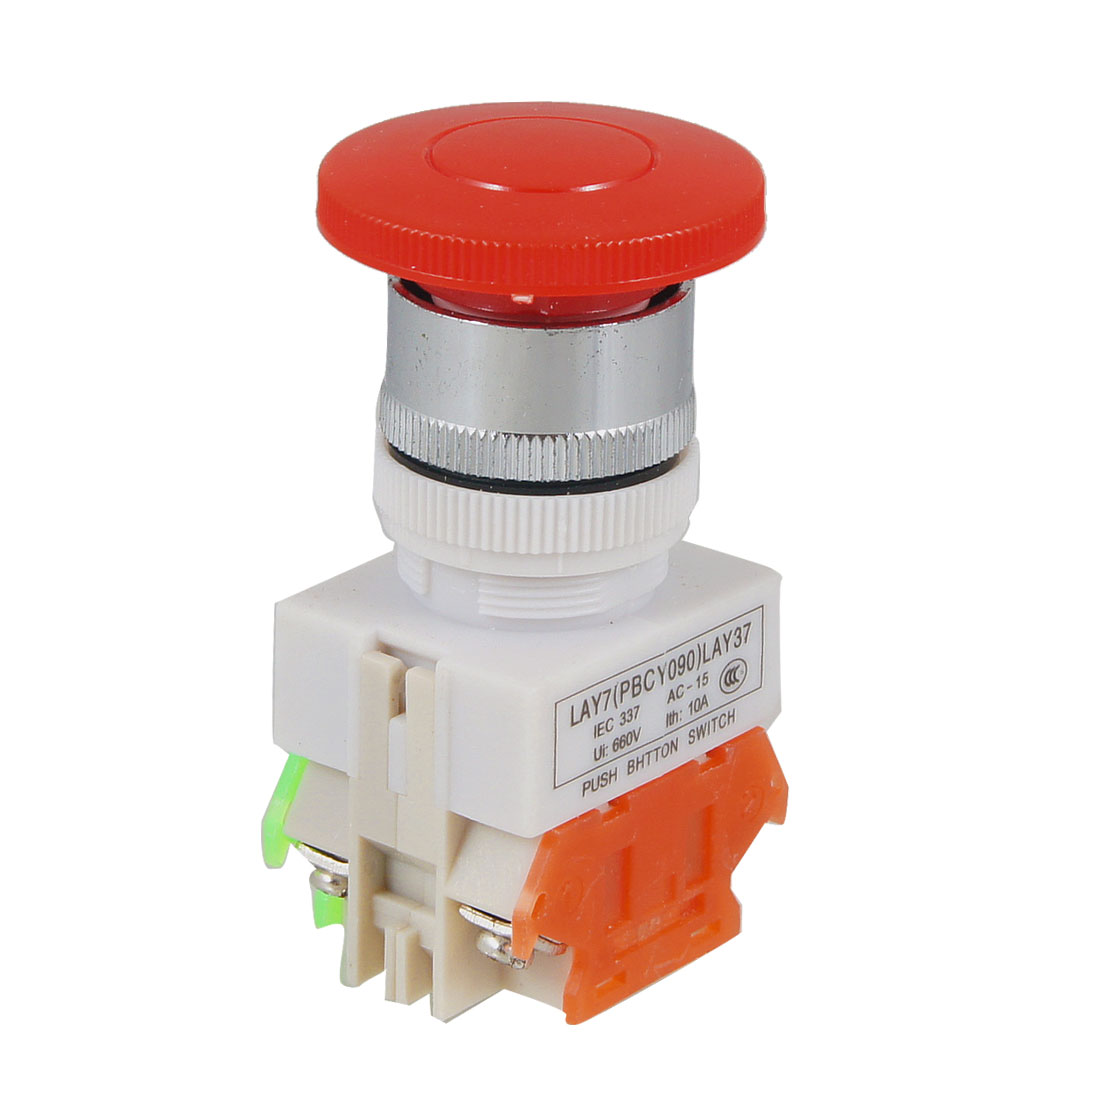 Red Mushroom Cap DPST Momentary Push Button Switch 660V 10A